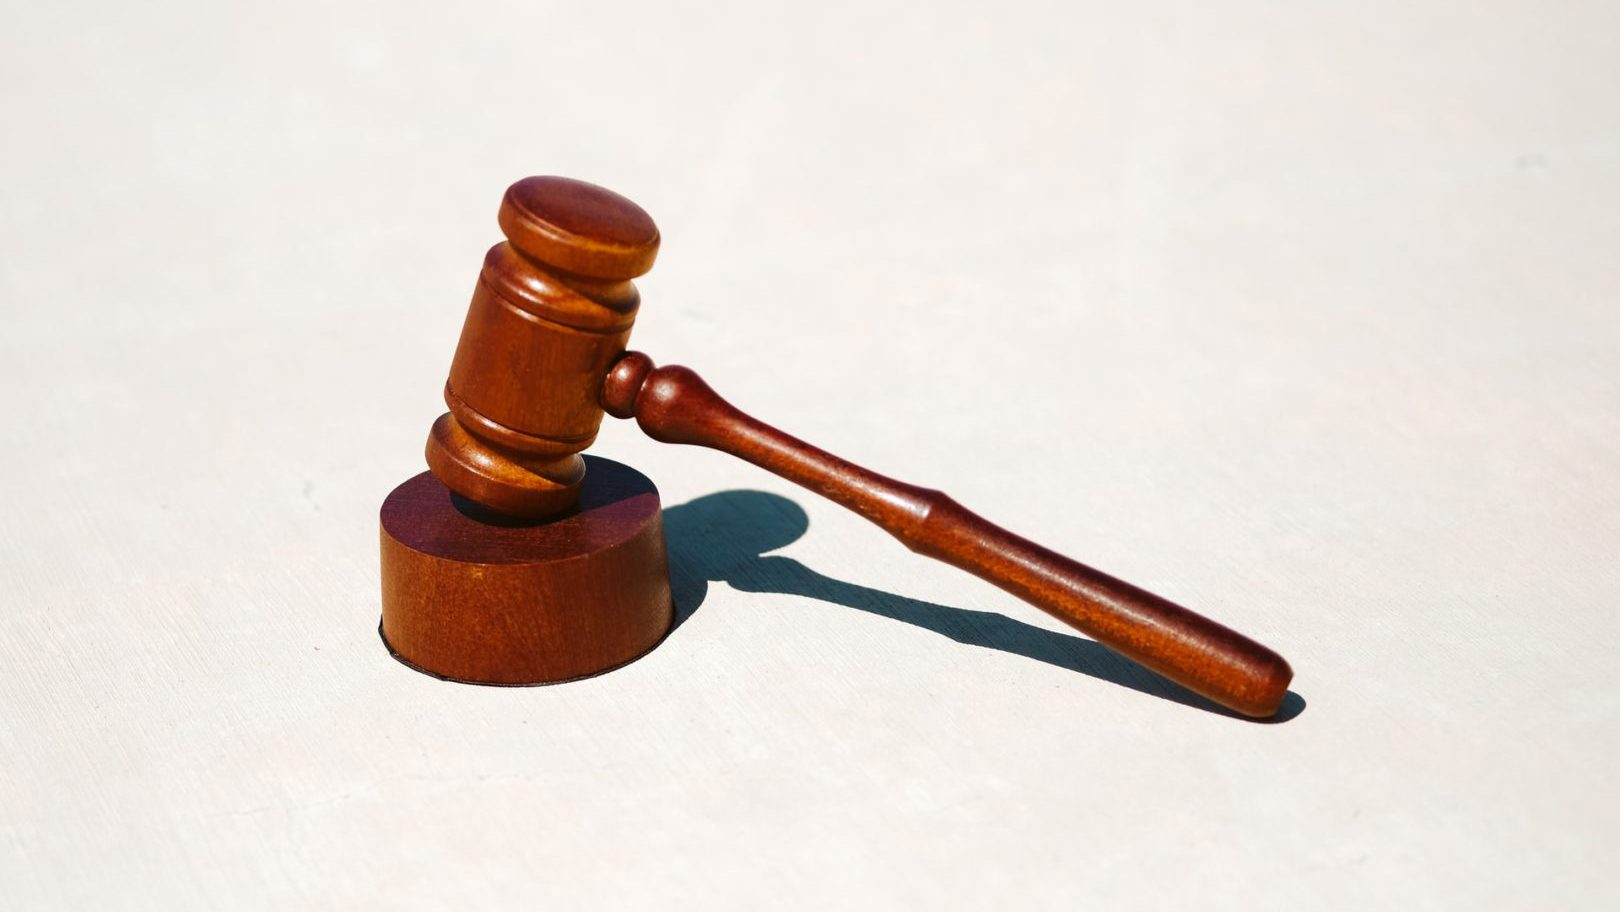 Hiring an Attorney for Your Auto Accident Case